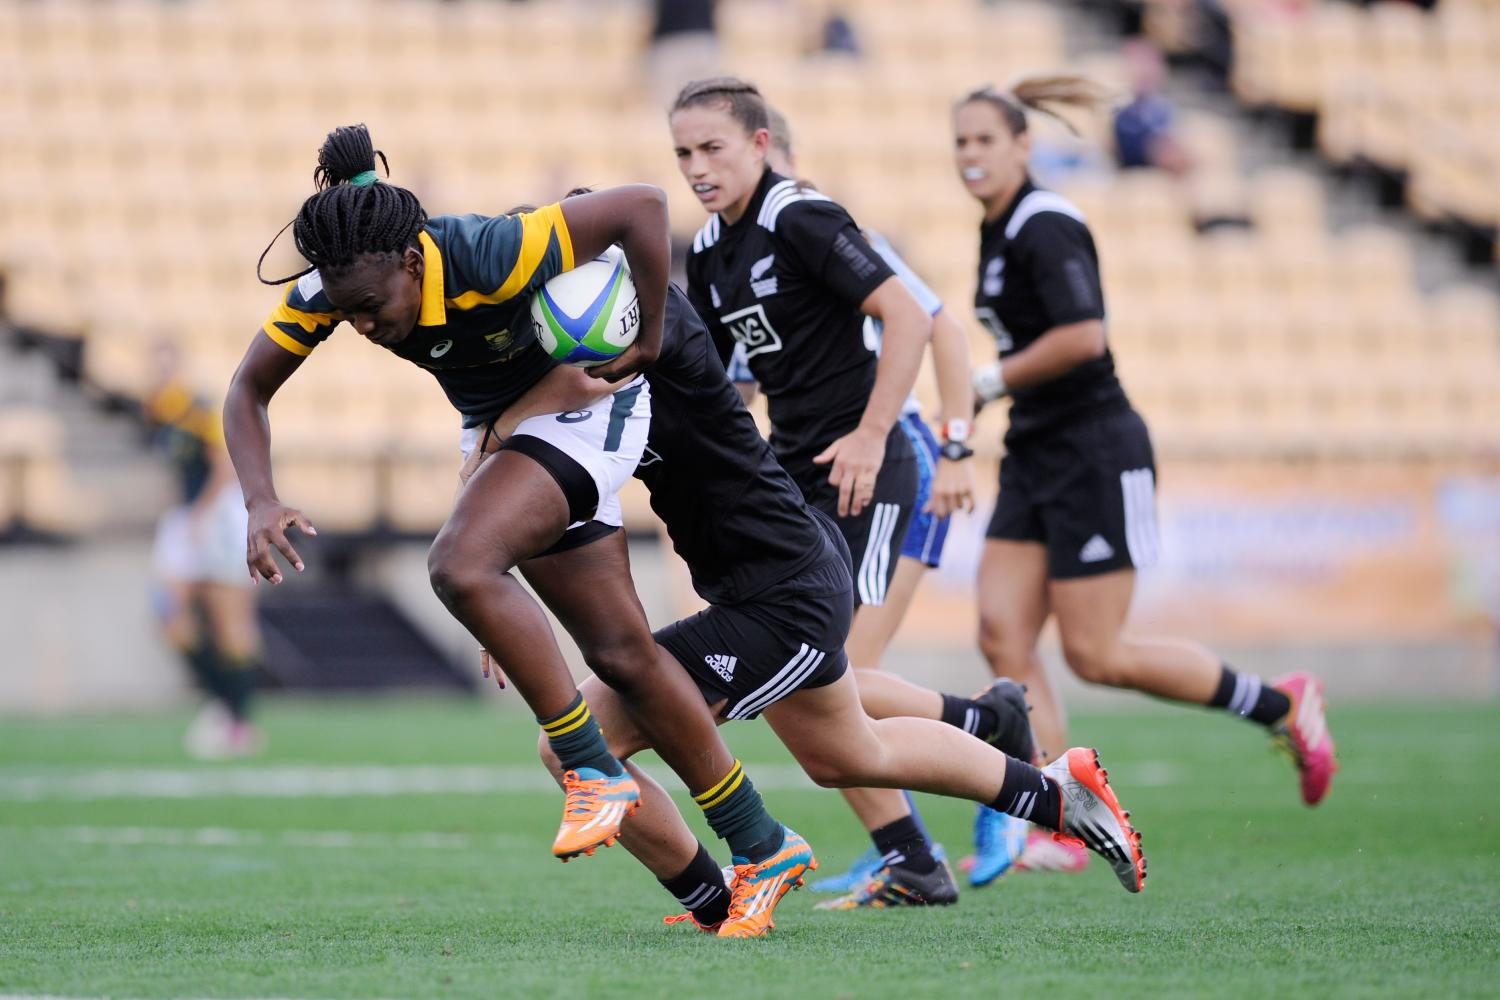 South Africa on the attack against New Zealand